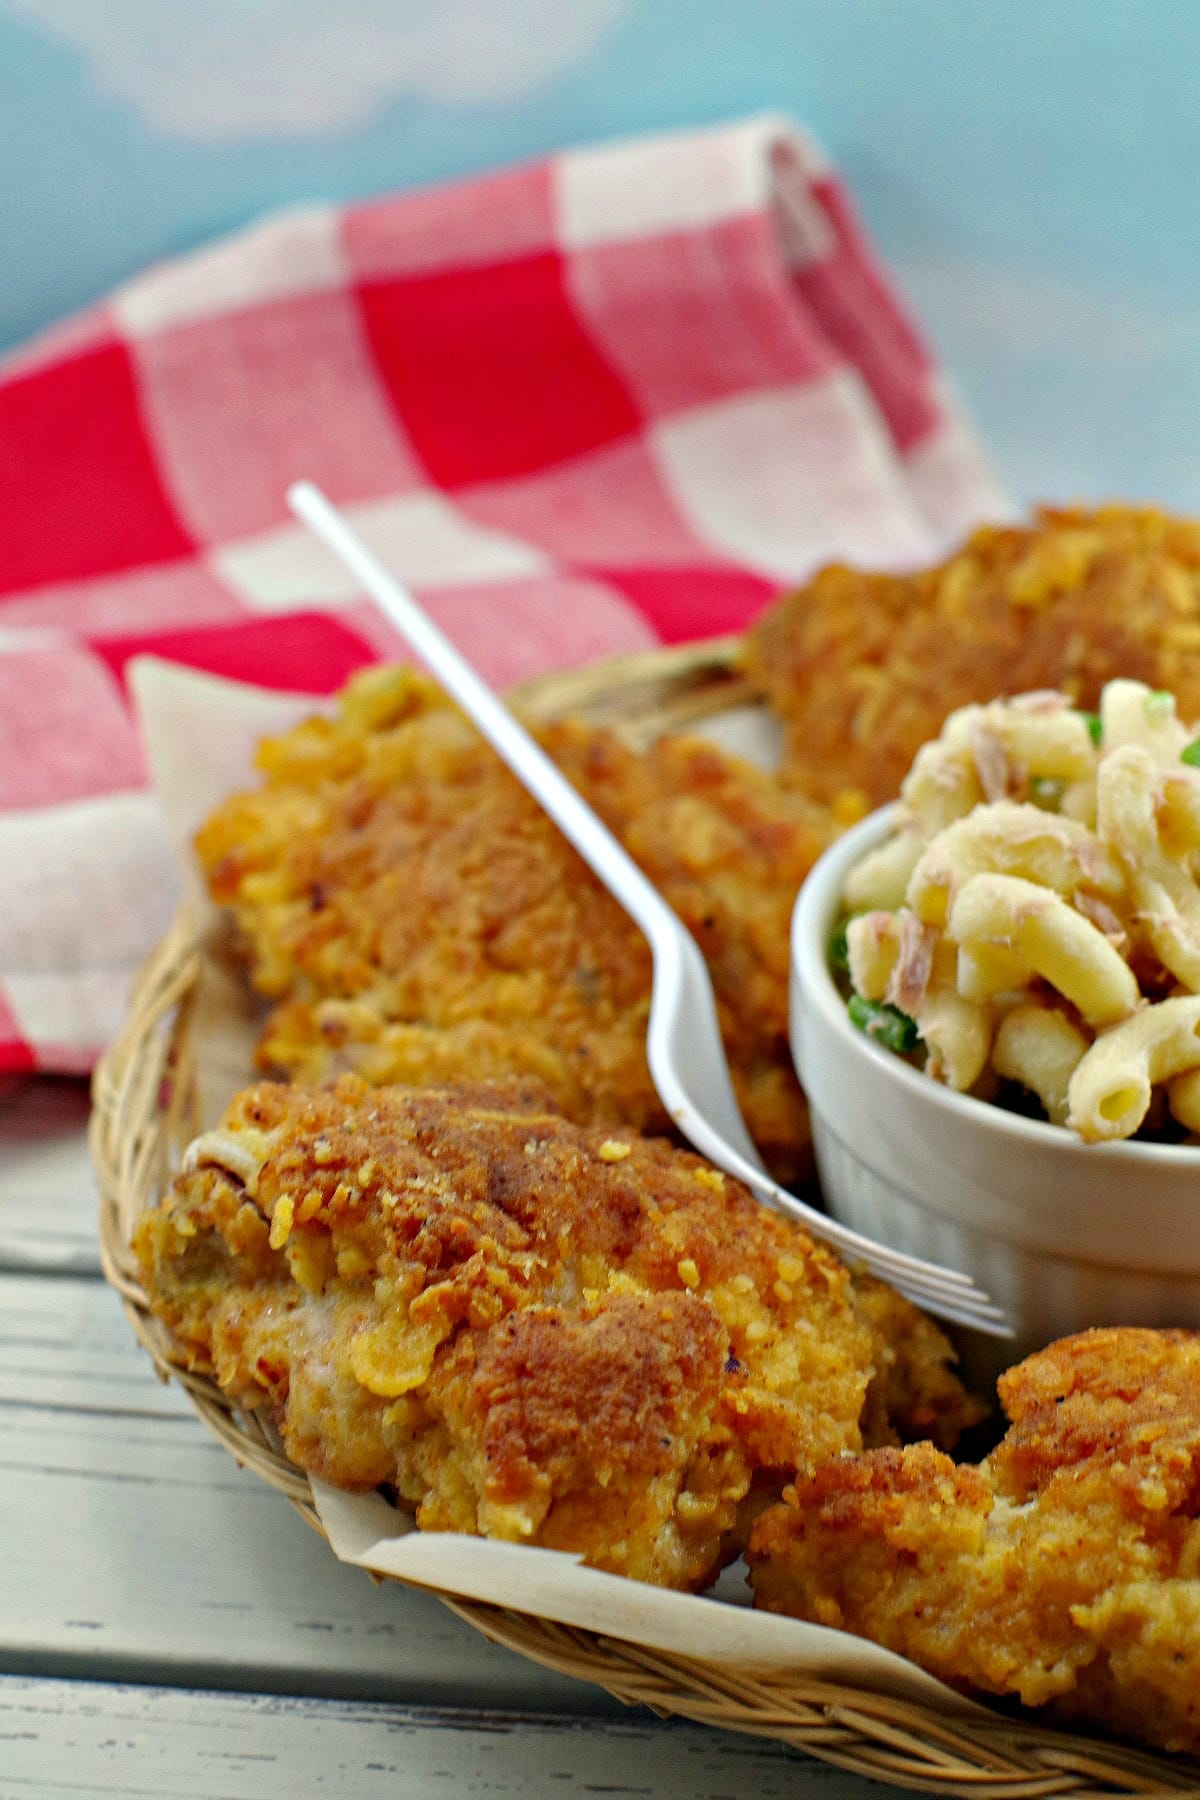 view of half plate of fried chicken with macaroni salad